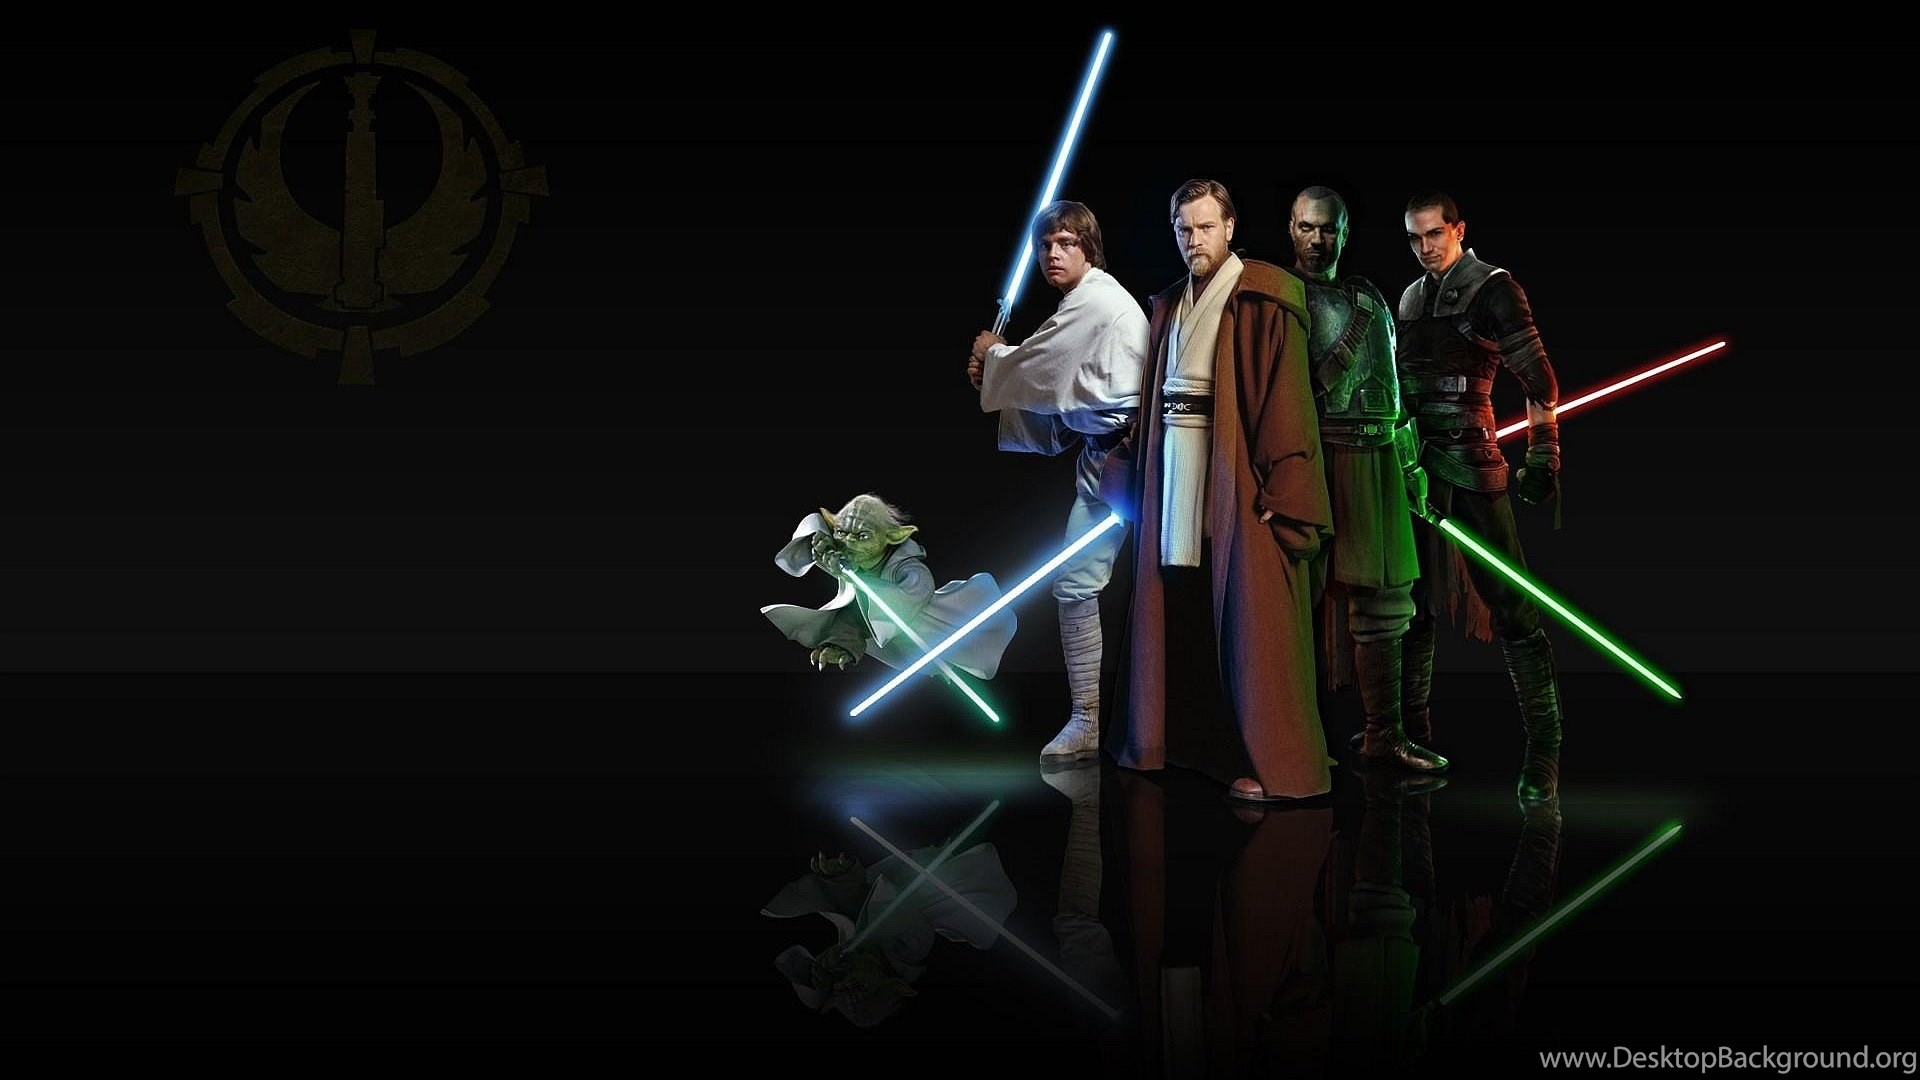 High Resolution Star Wars Jedi Wallpapers Full Size SiWallpaperHD